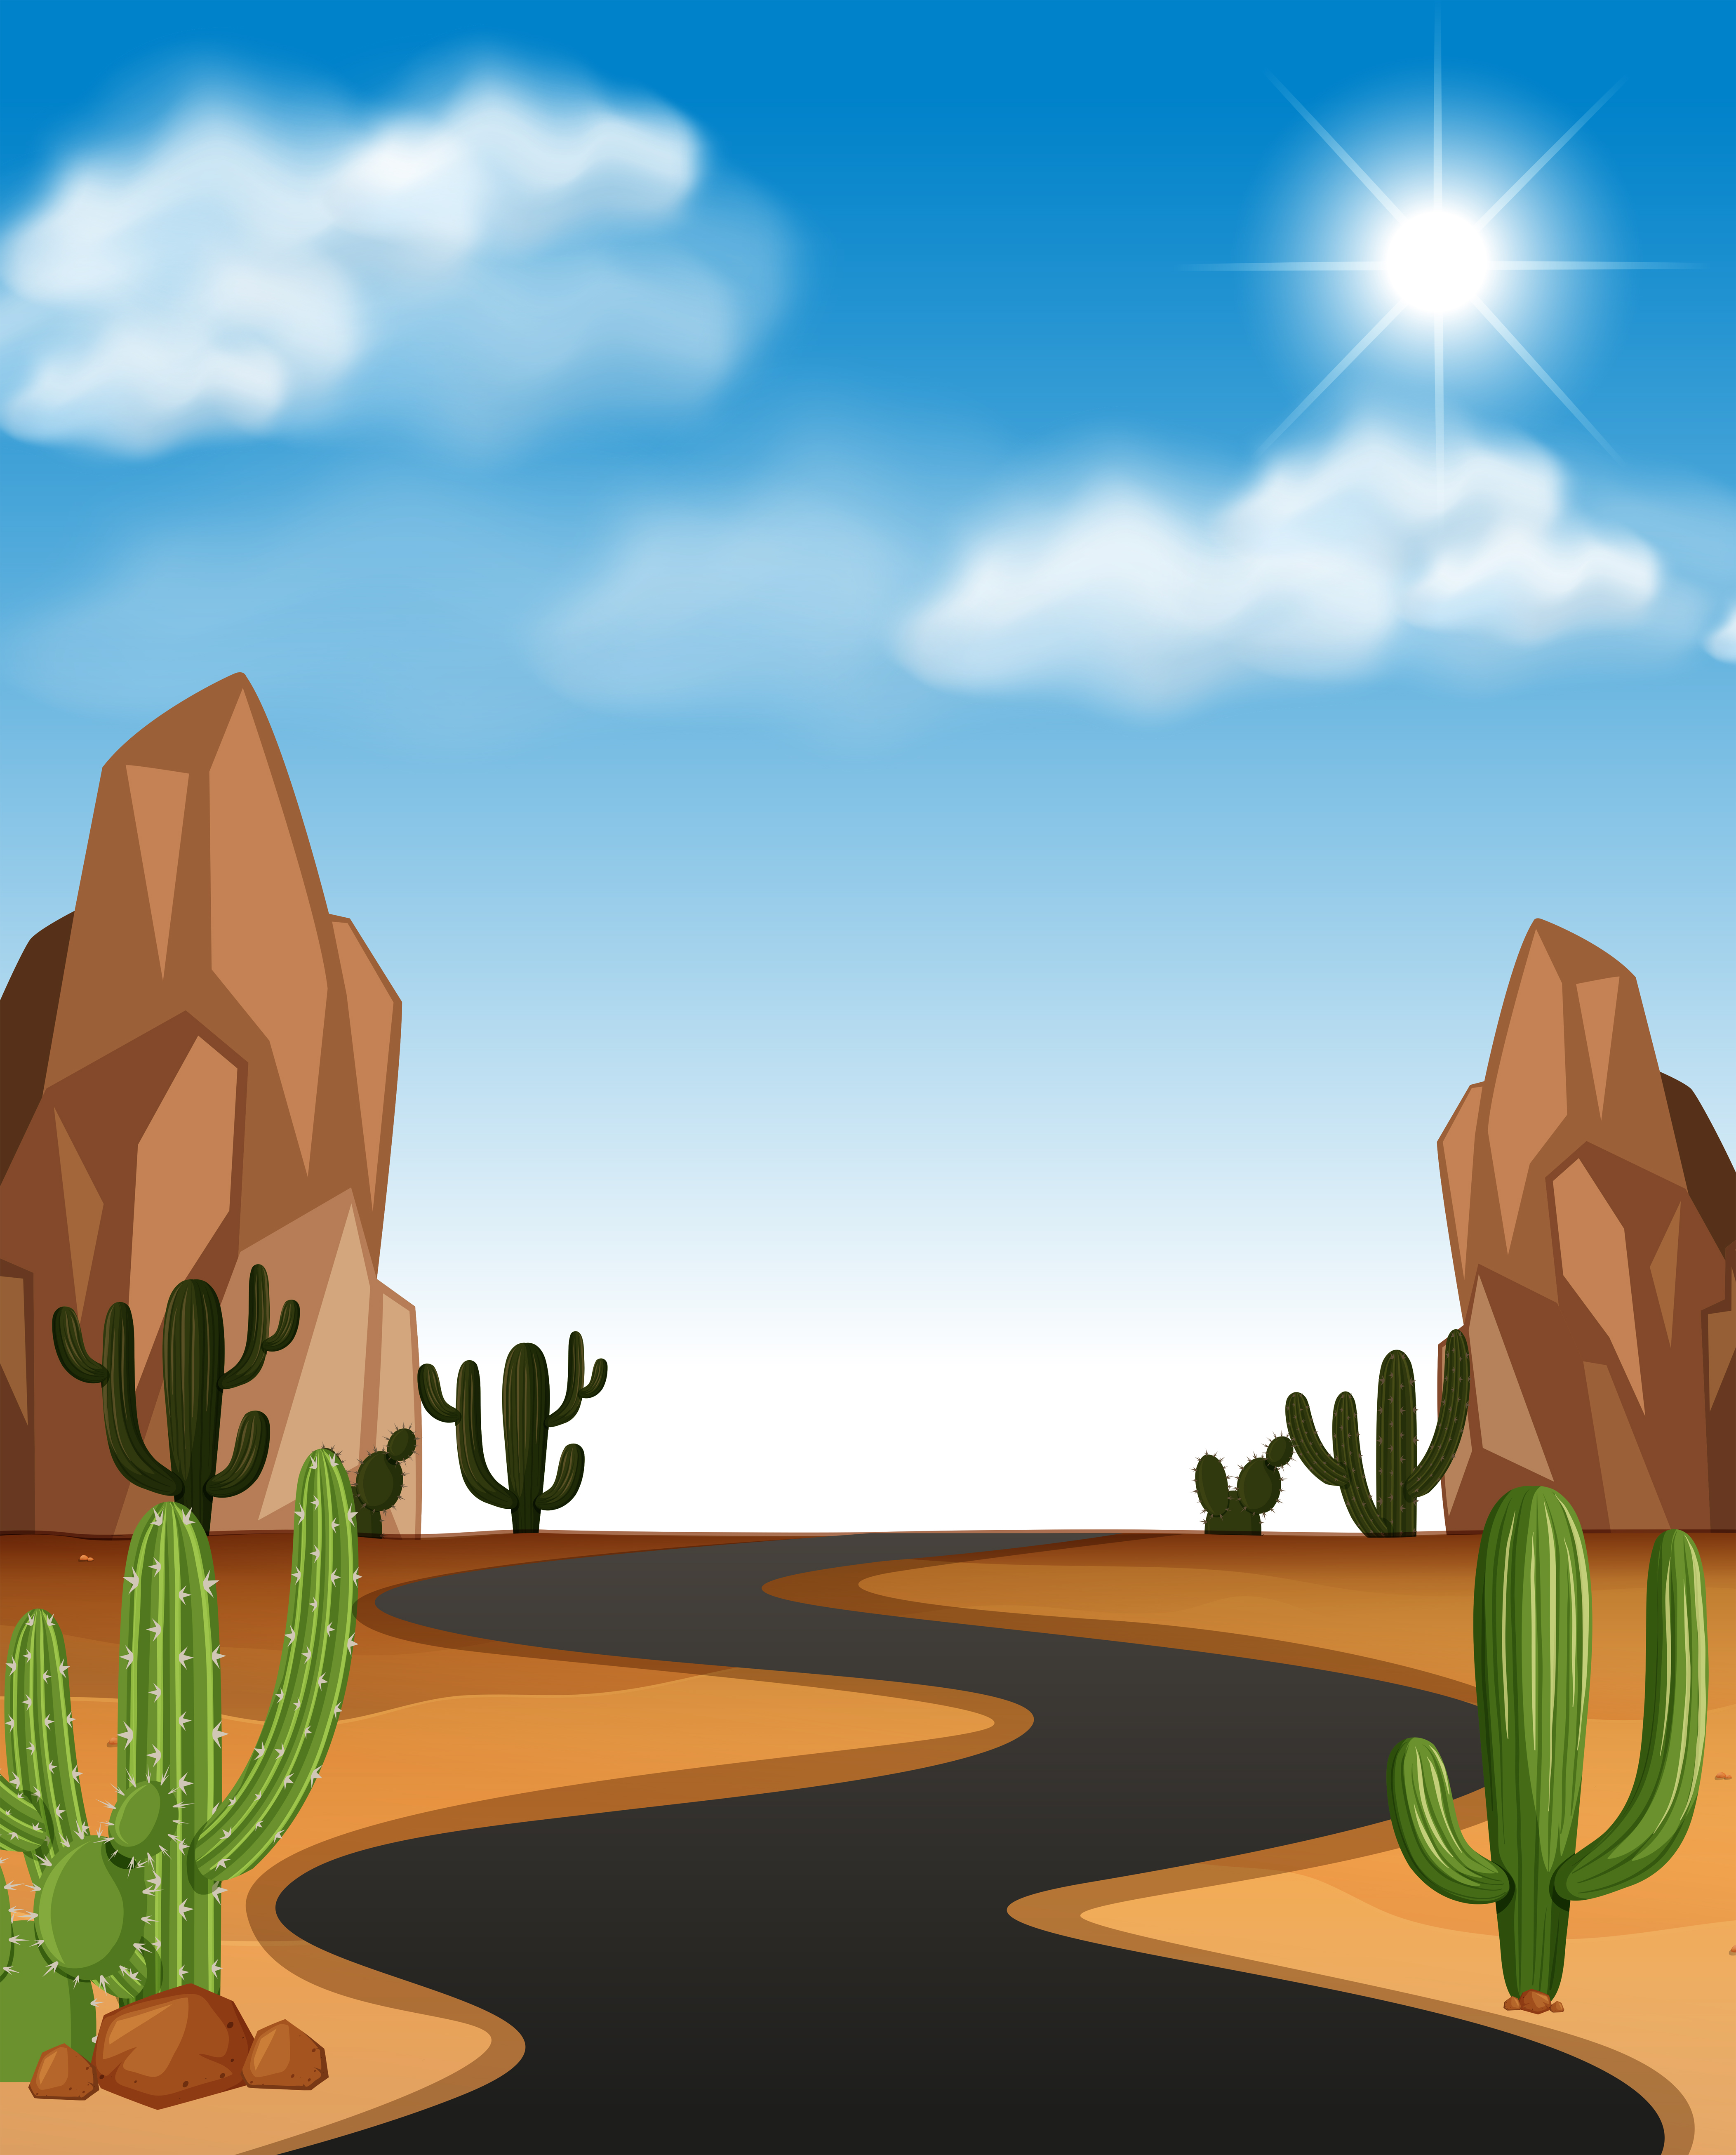 Desert Scene With Road And Cactus Download Free Vectors